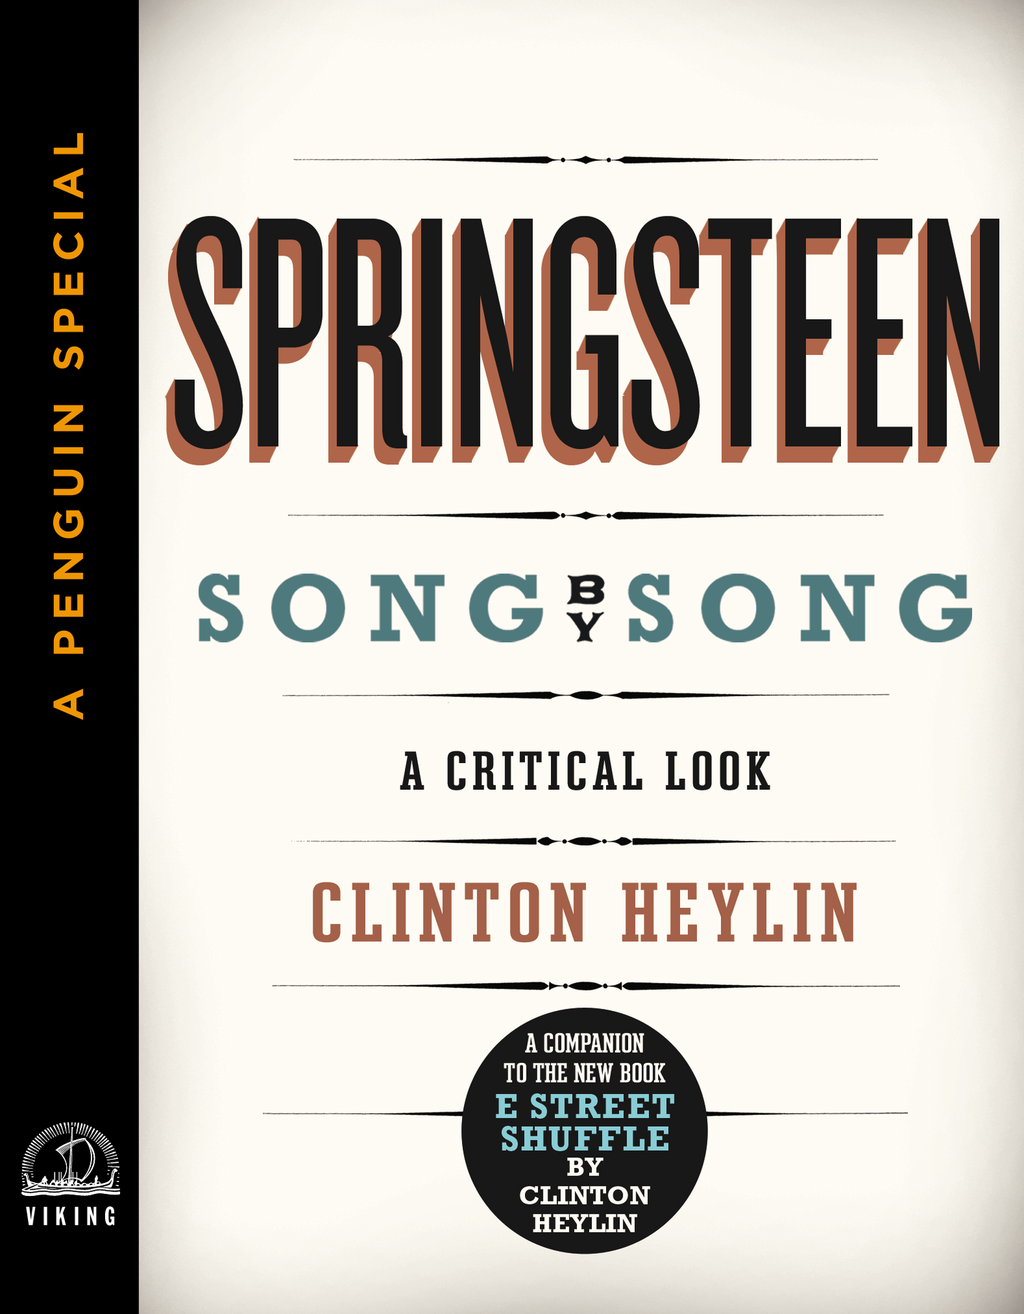 Springsteen Song by Song By: Clinton Heylin